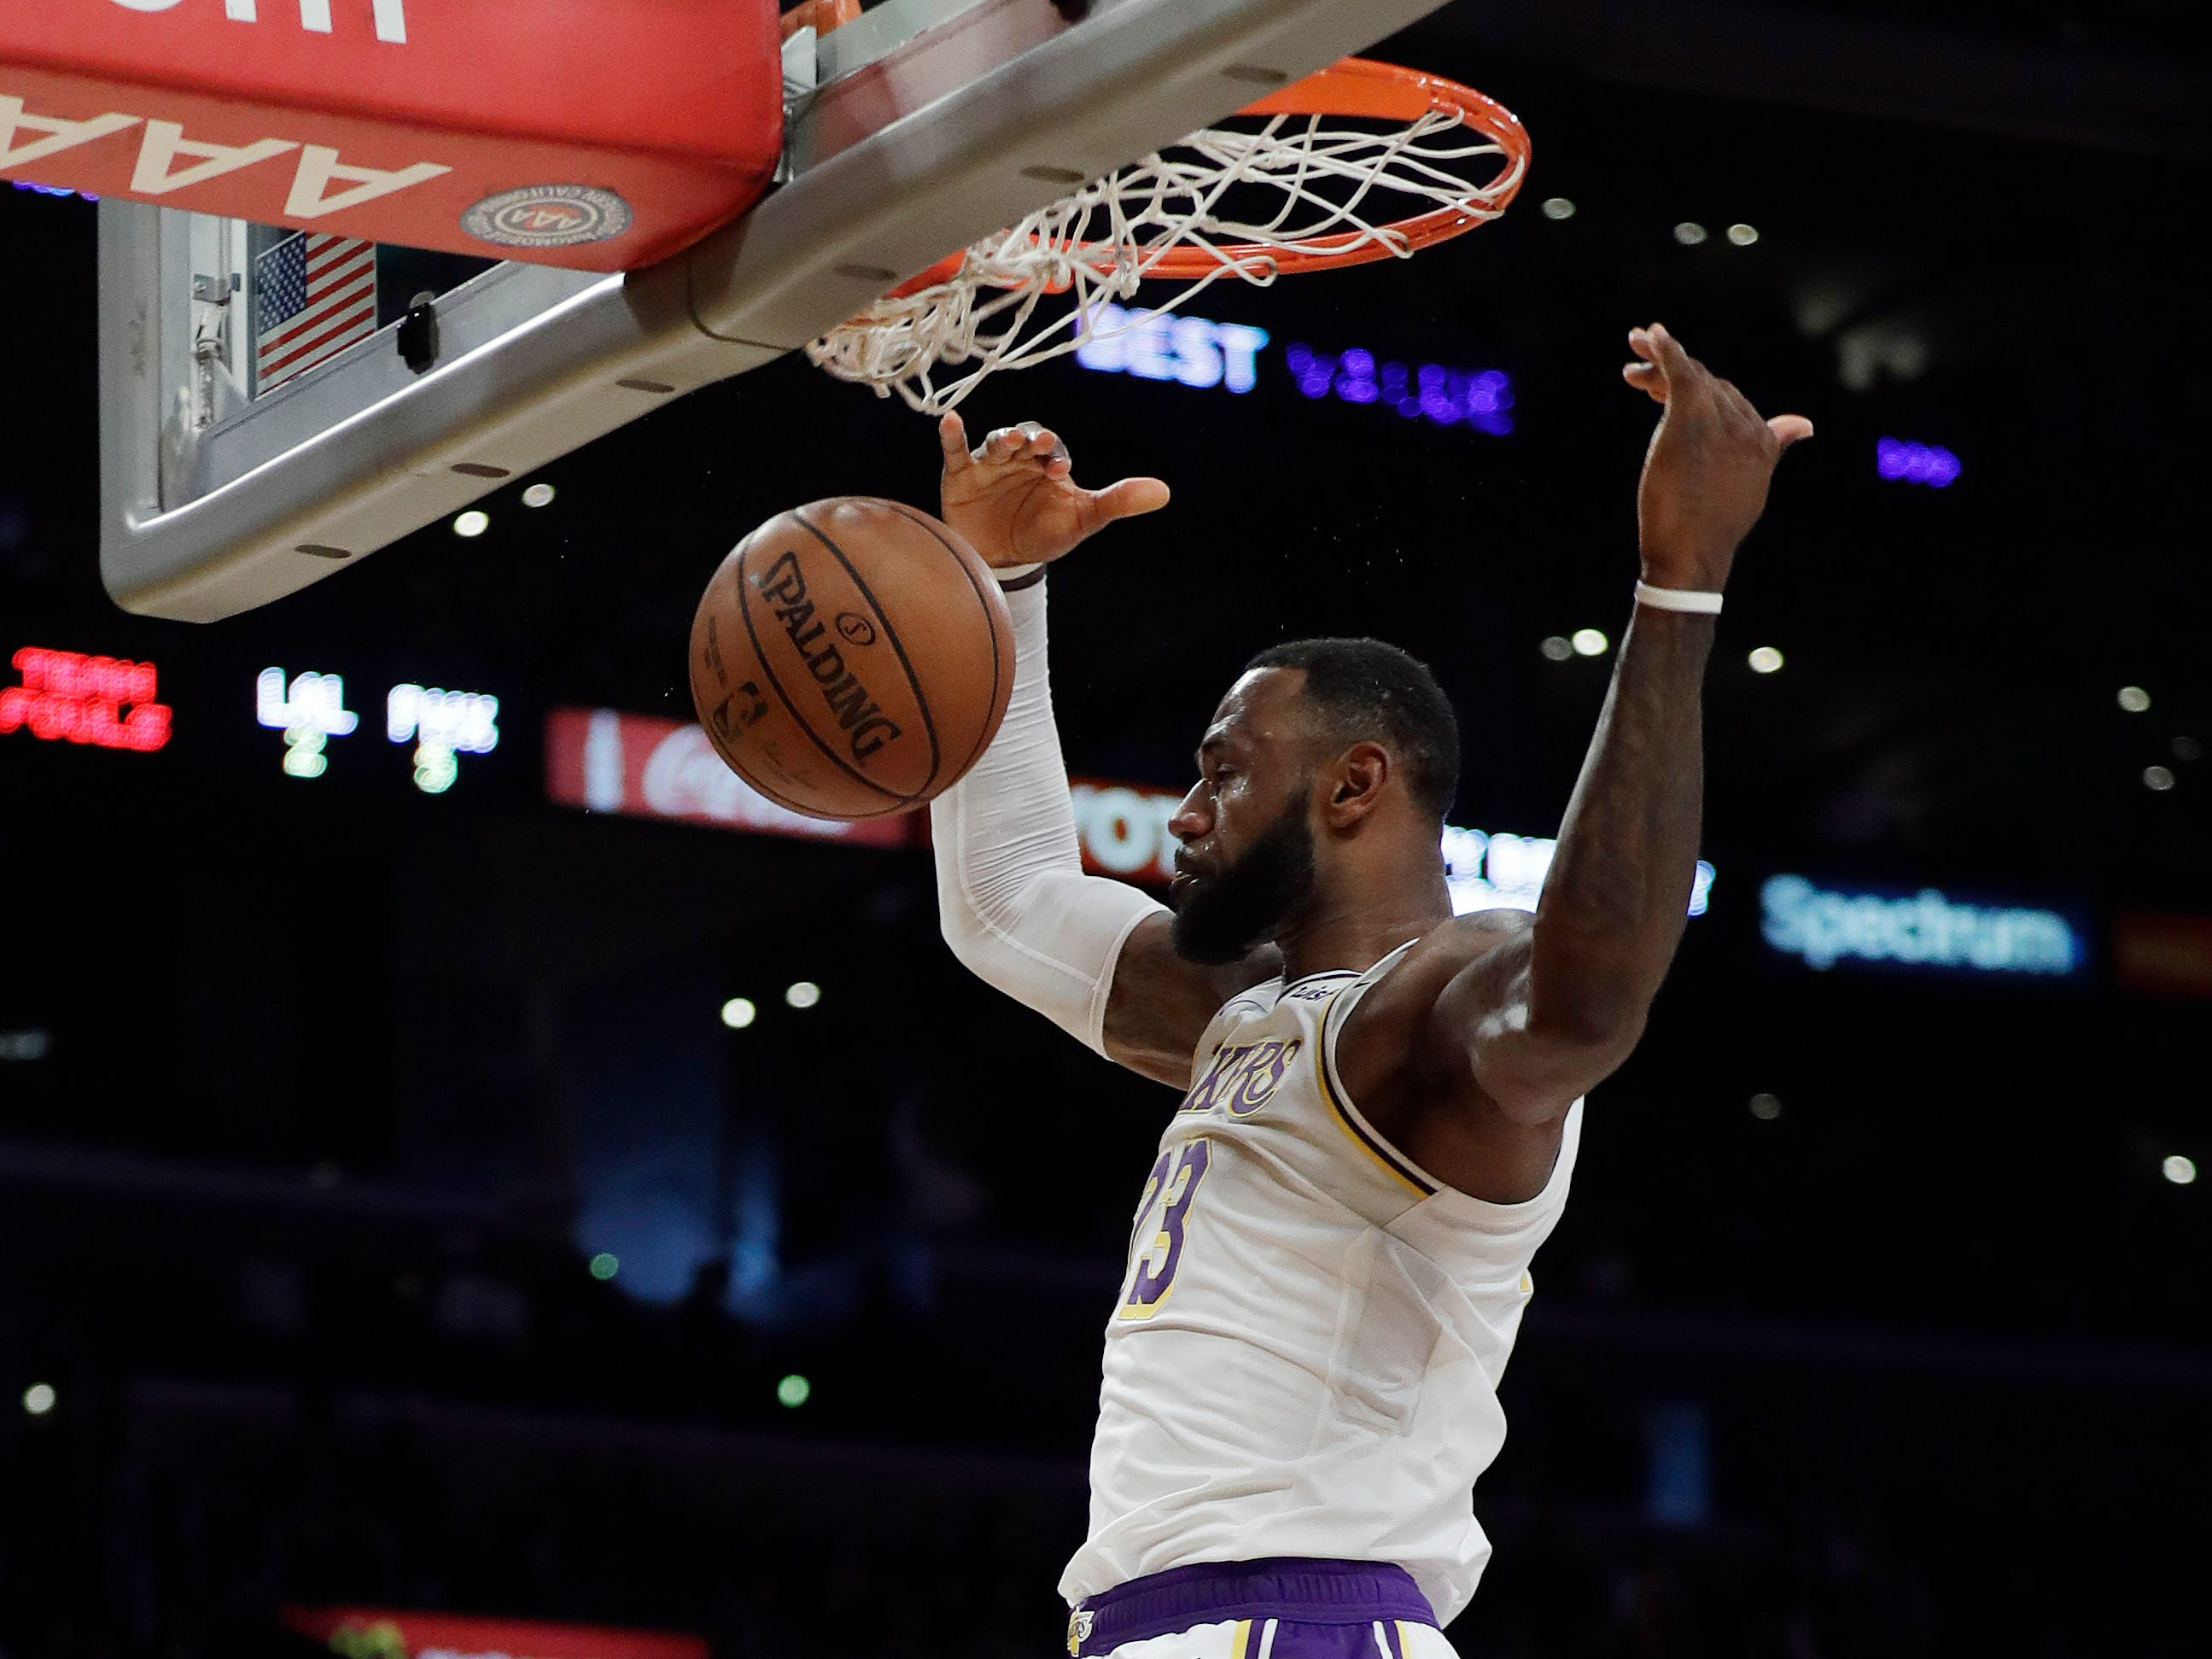 Los Angeles Lakers' LeBron James scores on a breakaway dunk against the Phoenix Suns during the second half of an NBA basketball game Sunday, Dec. 2, 2018, in Los Angeles. (AP Photo/Marcio Jose Sanchez)